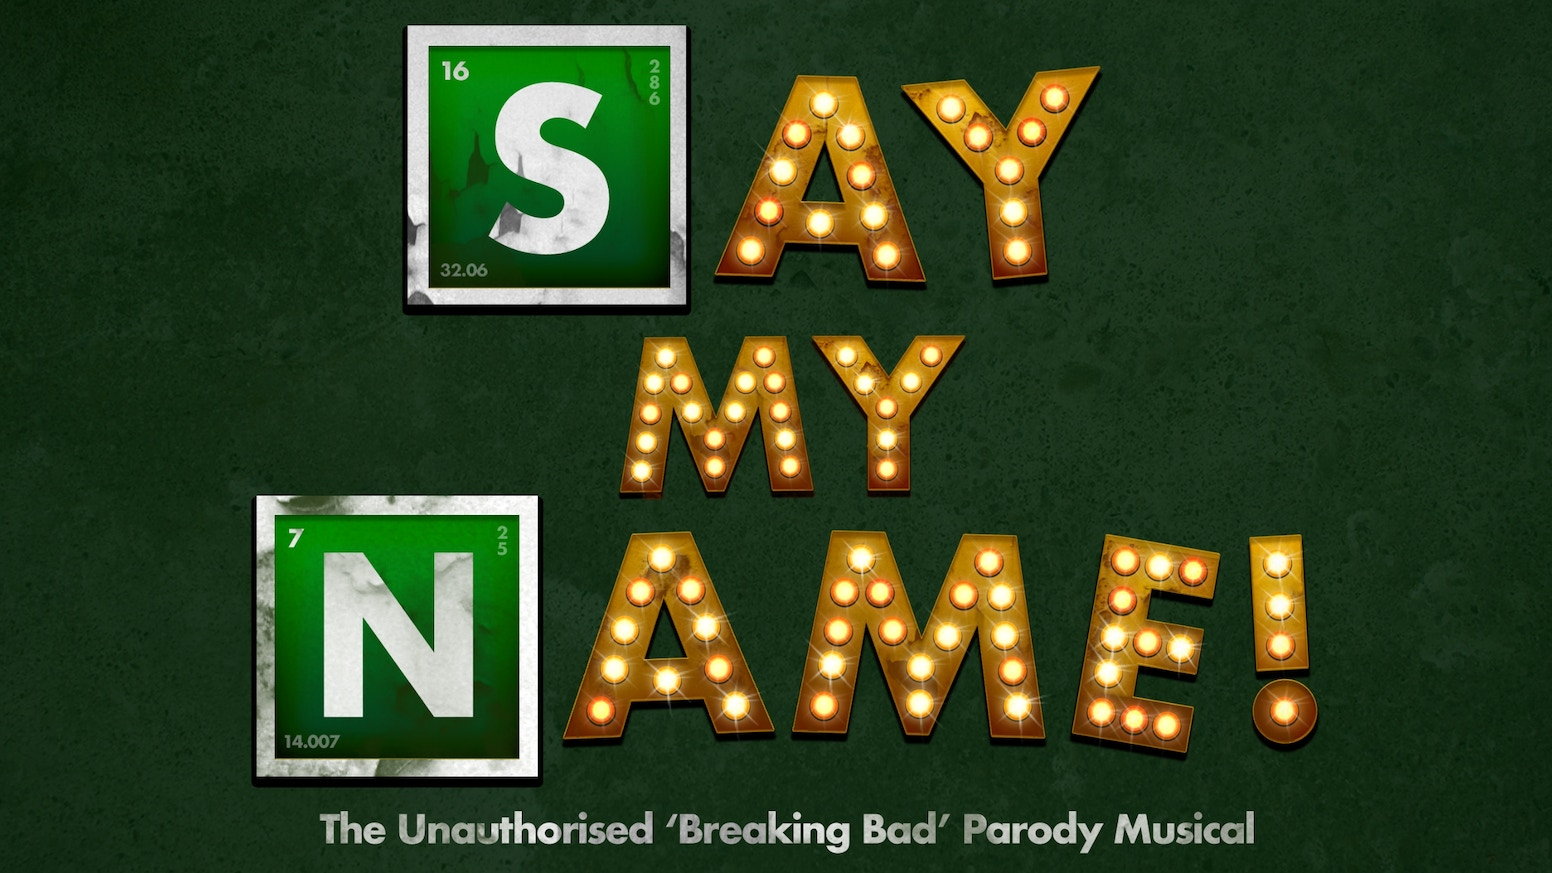 Say My Name! The Unauthorised 'Breaking Bad' Parody Musical by